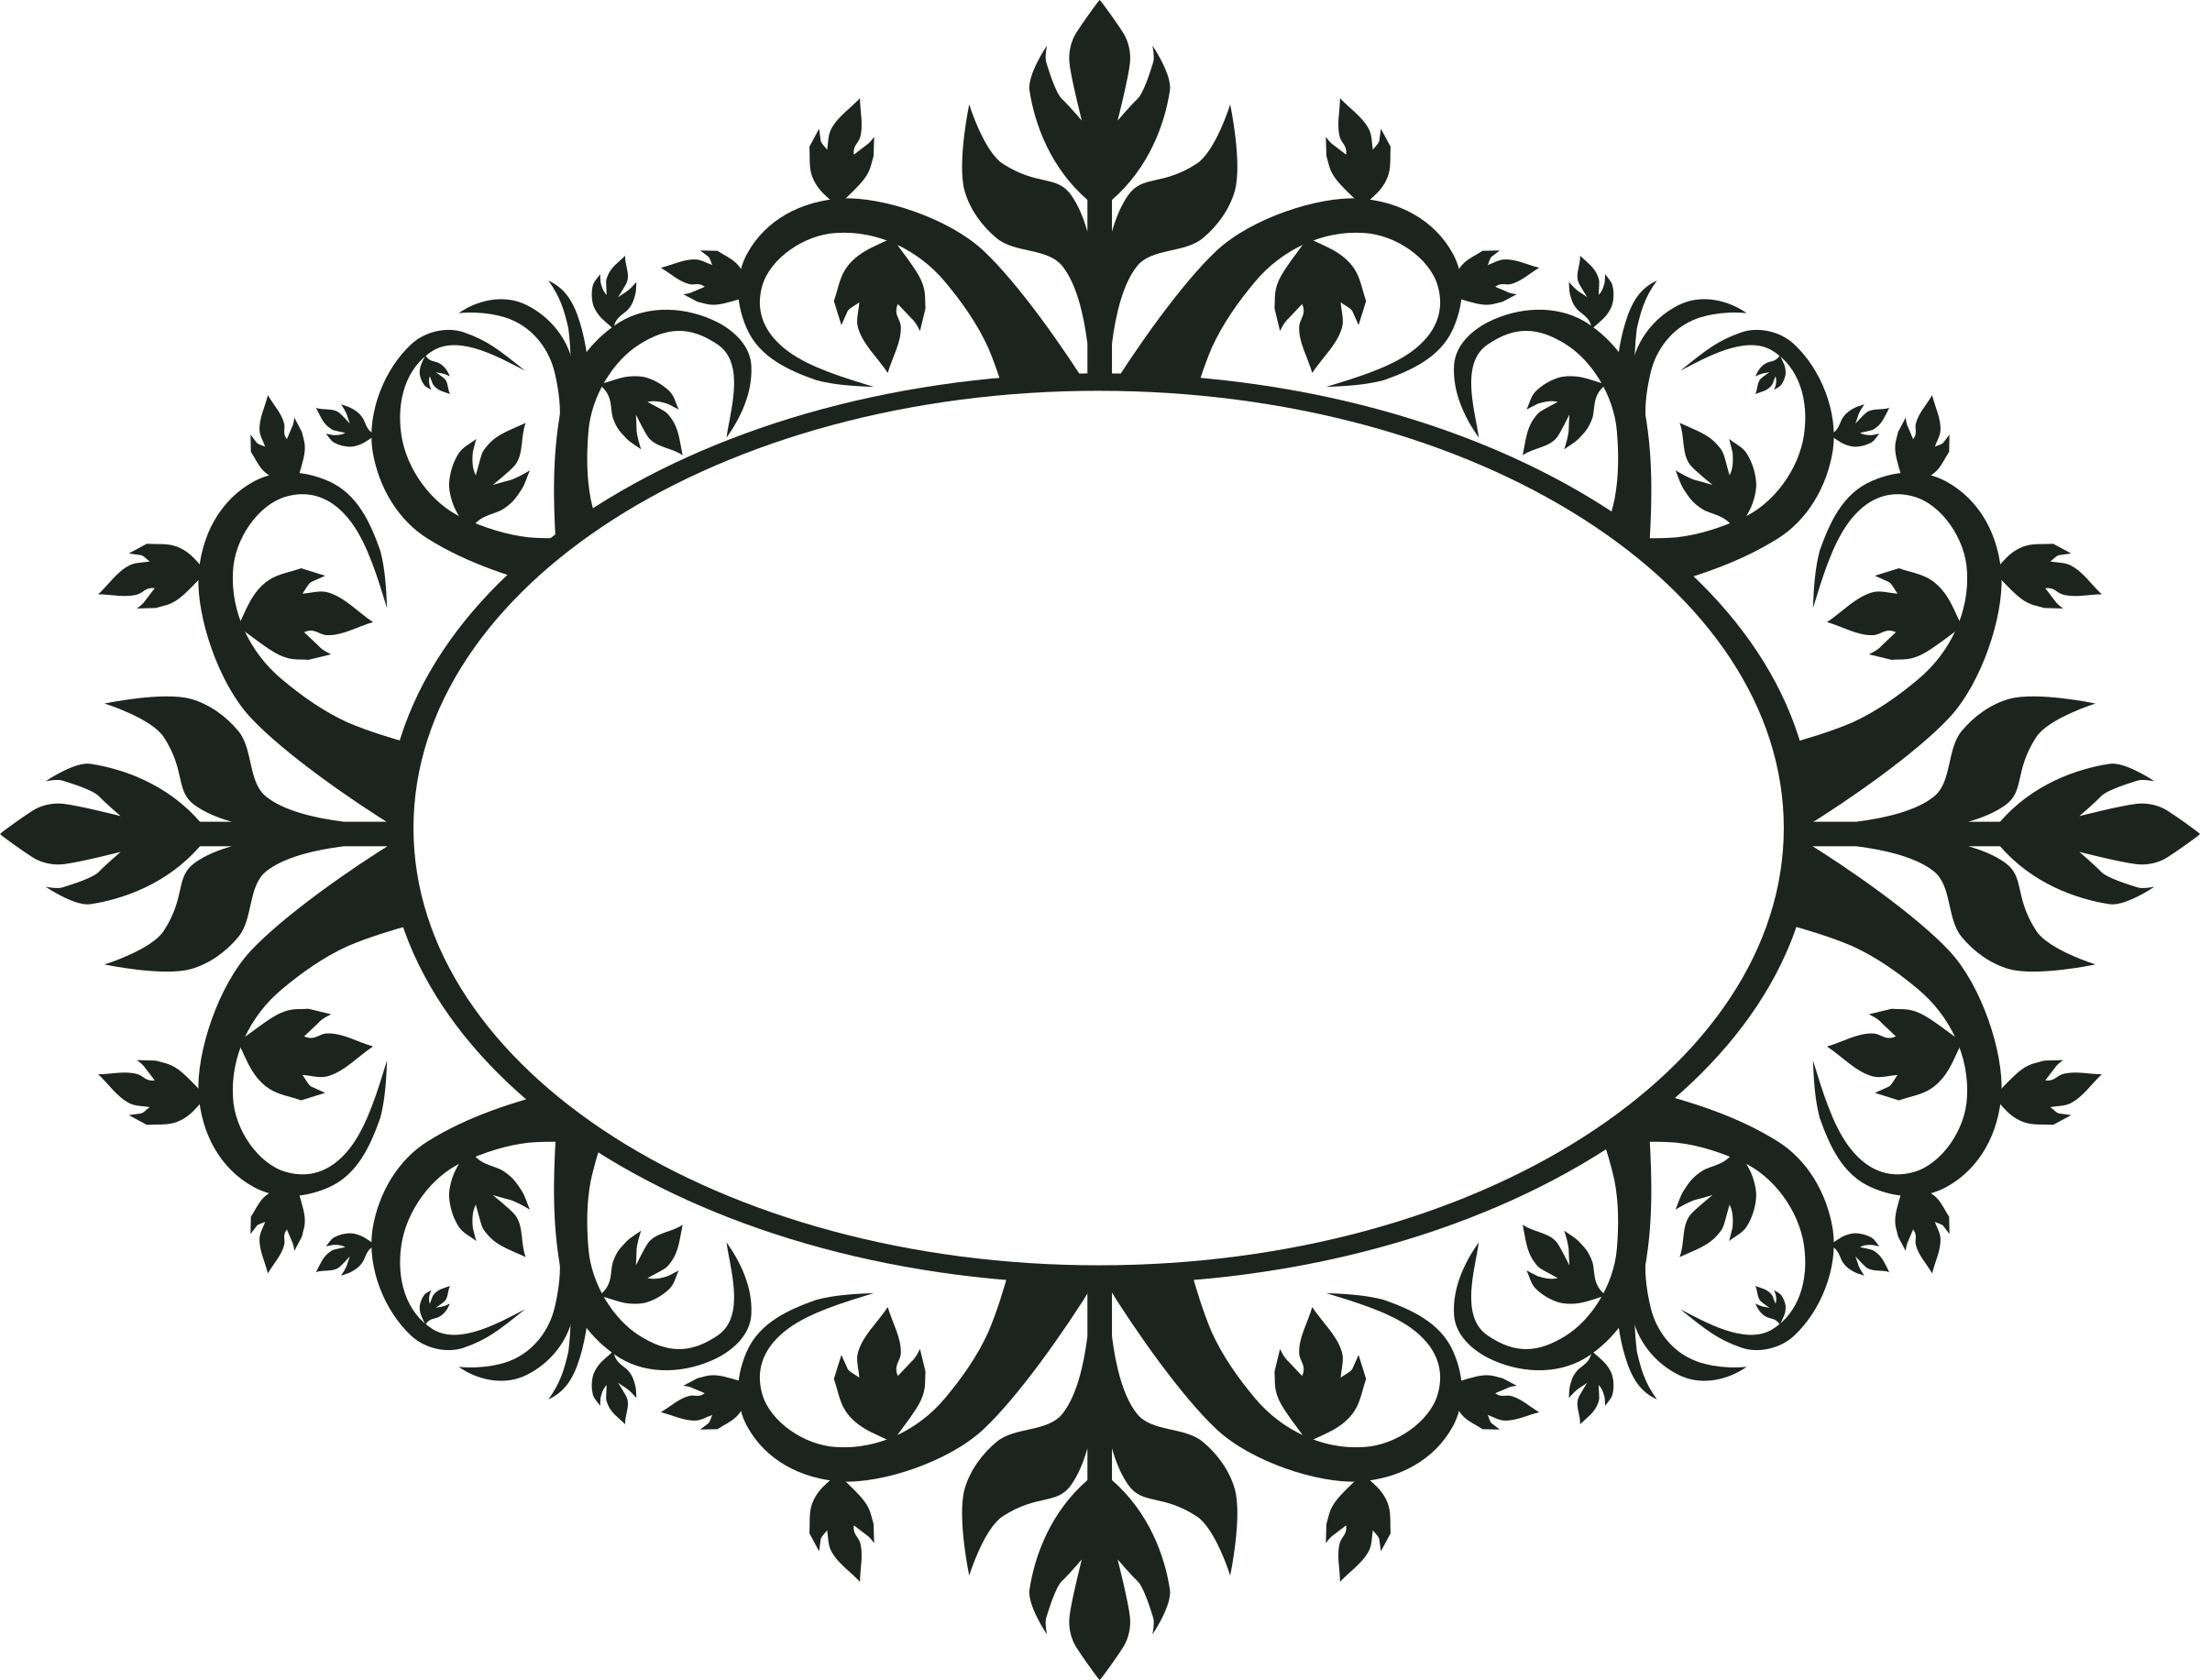 Ornament black and white clipart suggest